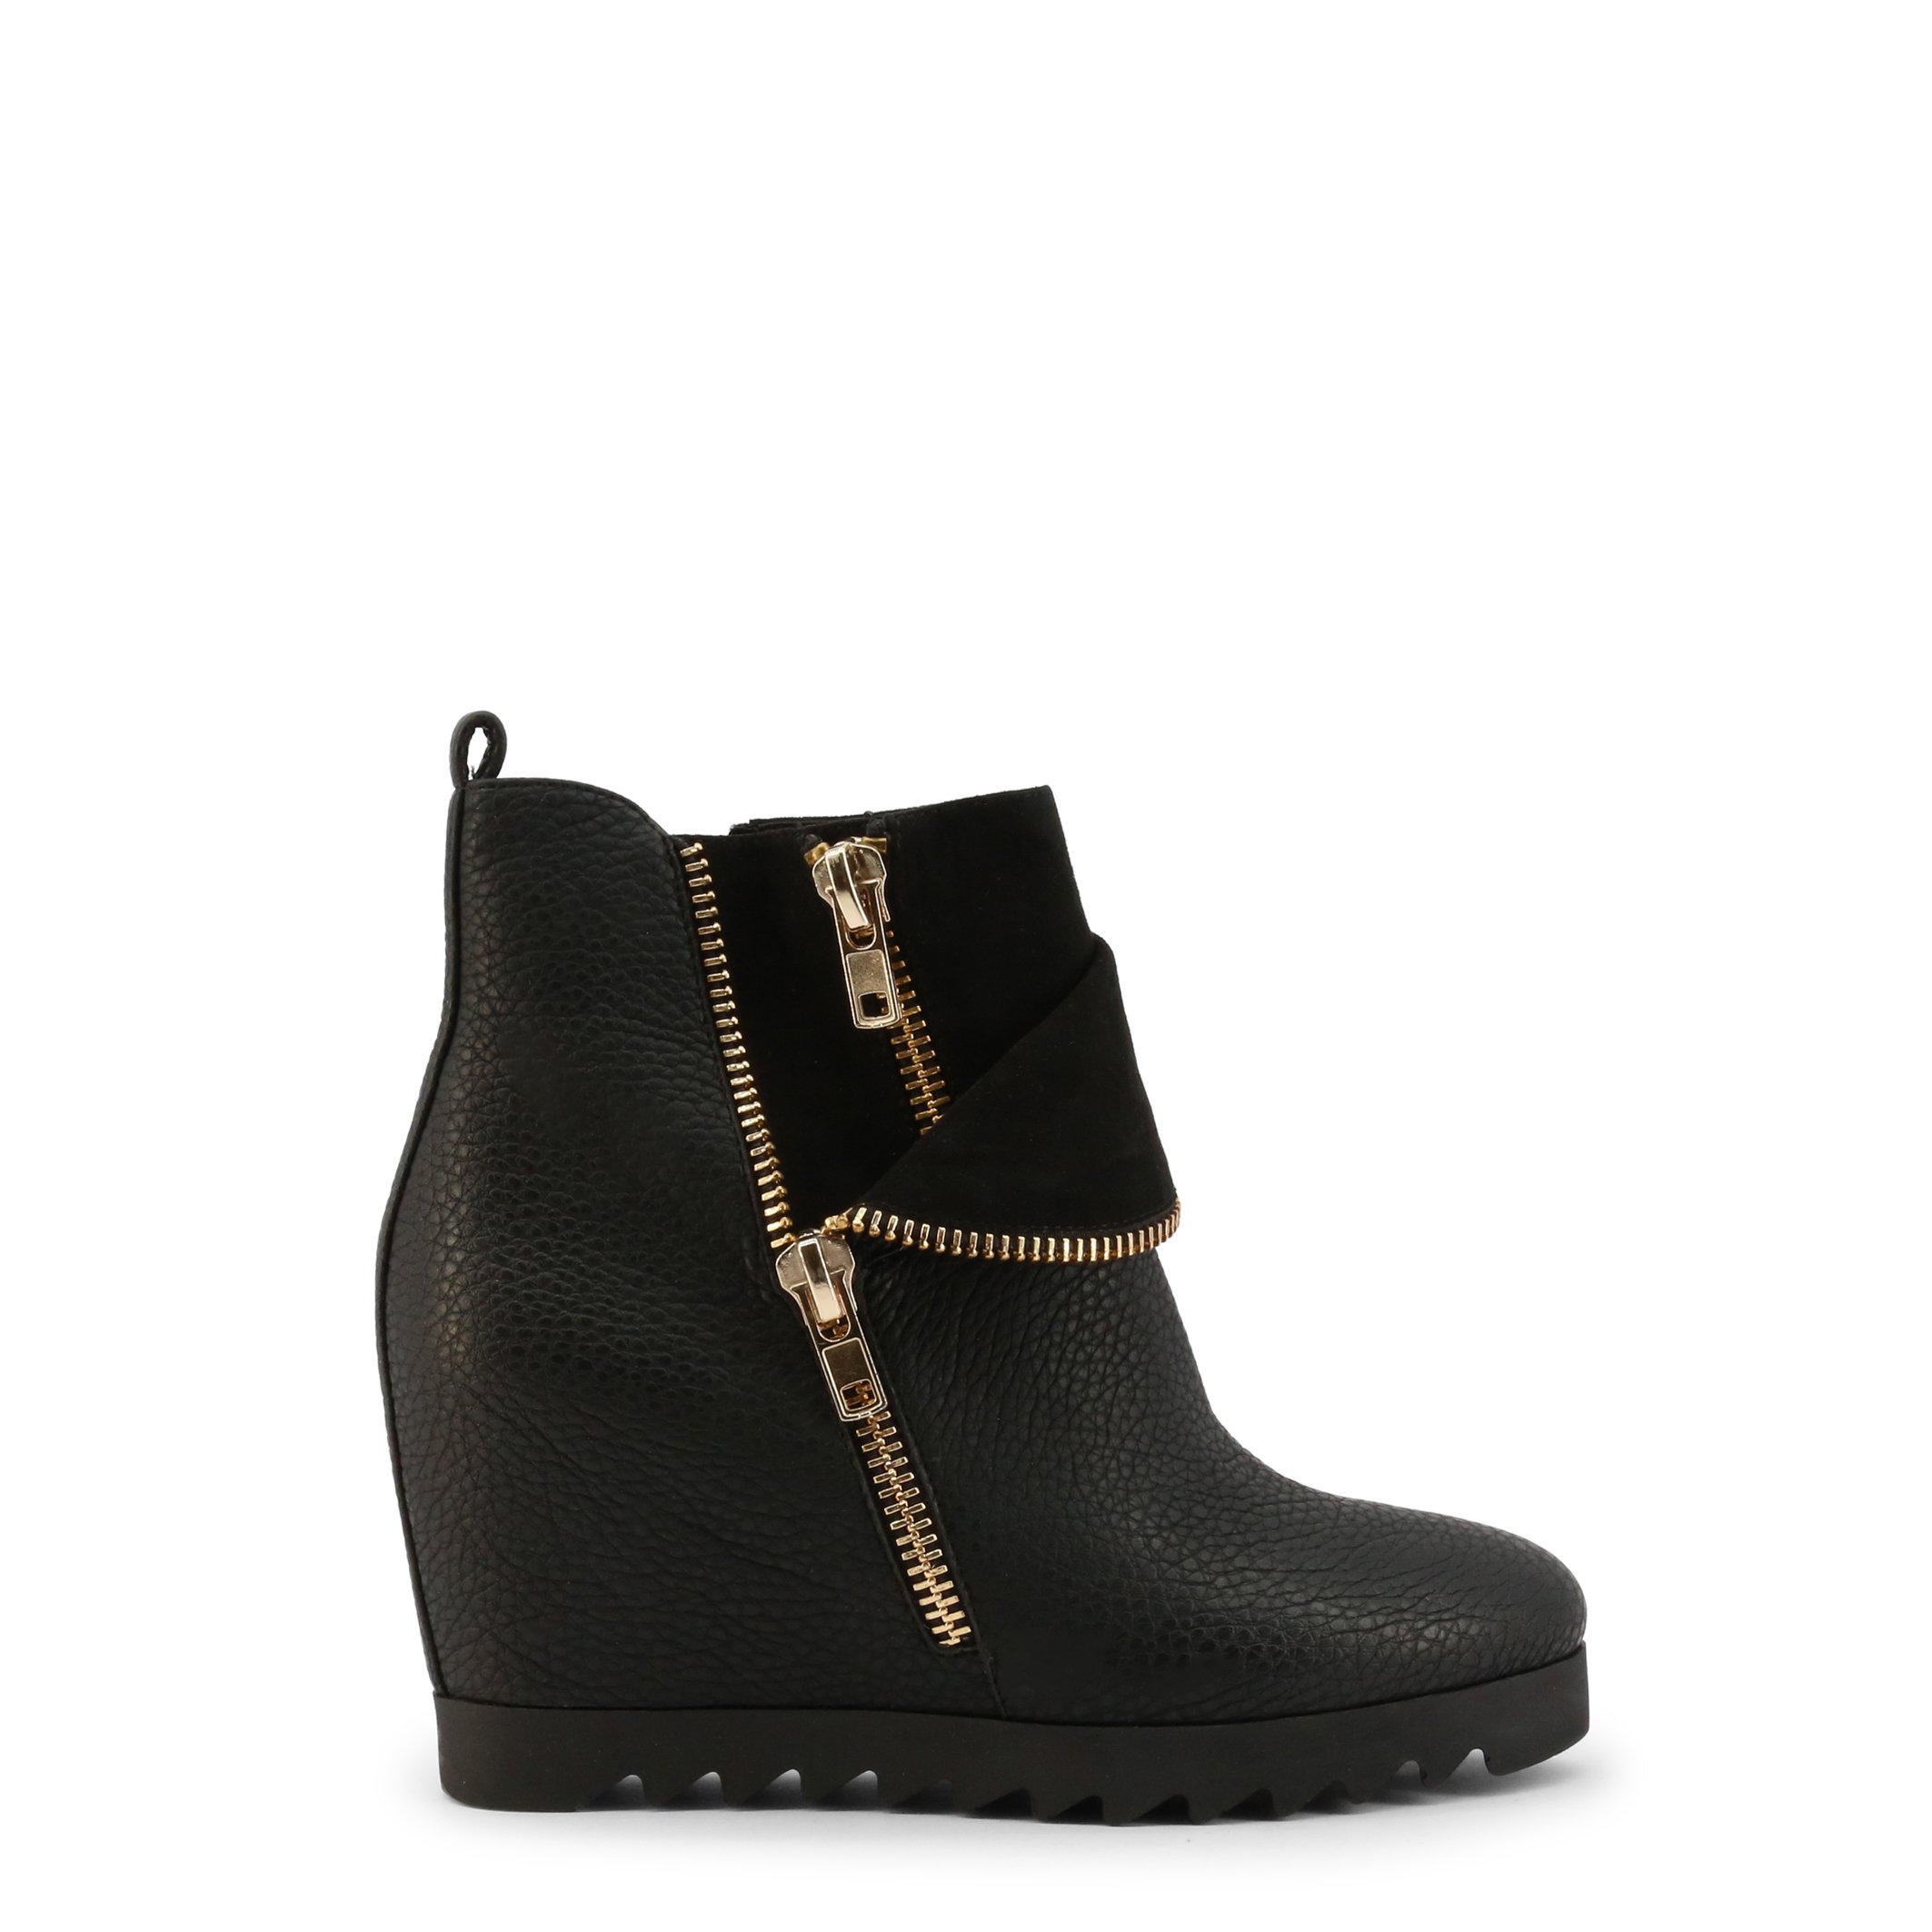 Roccobarocco Women's Ankle Boot Blue ROSC0VY01 - black EU 37